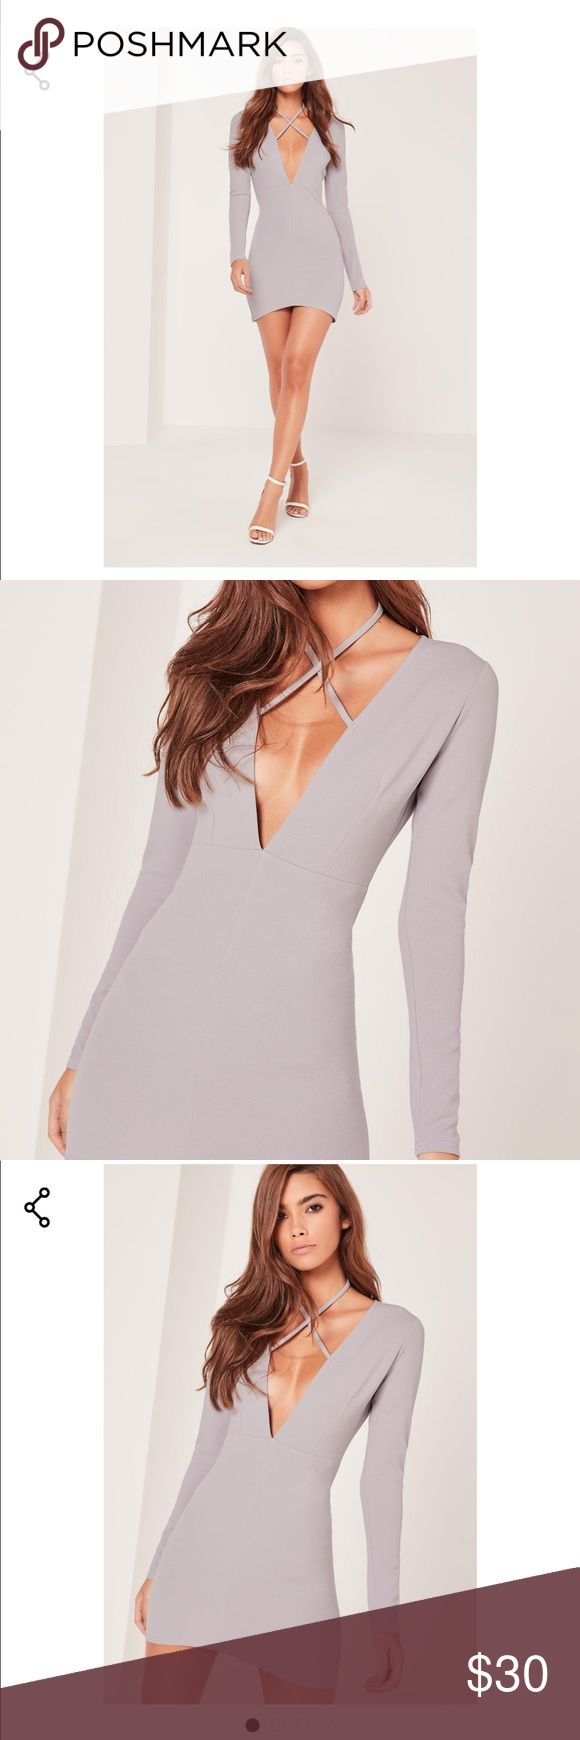 Brand New White* (not grey) Missguided dress sz4 Brand new with tags Missguided white plunging dress. Only used the stock photo that was grey but it's the same dress in white. Size 4 Missguided Dresses Mini